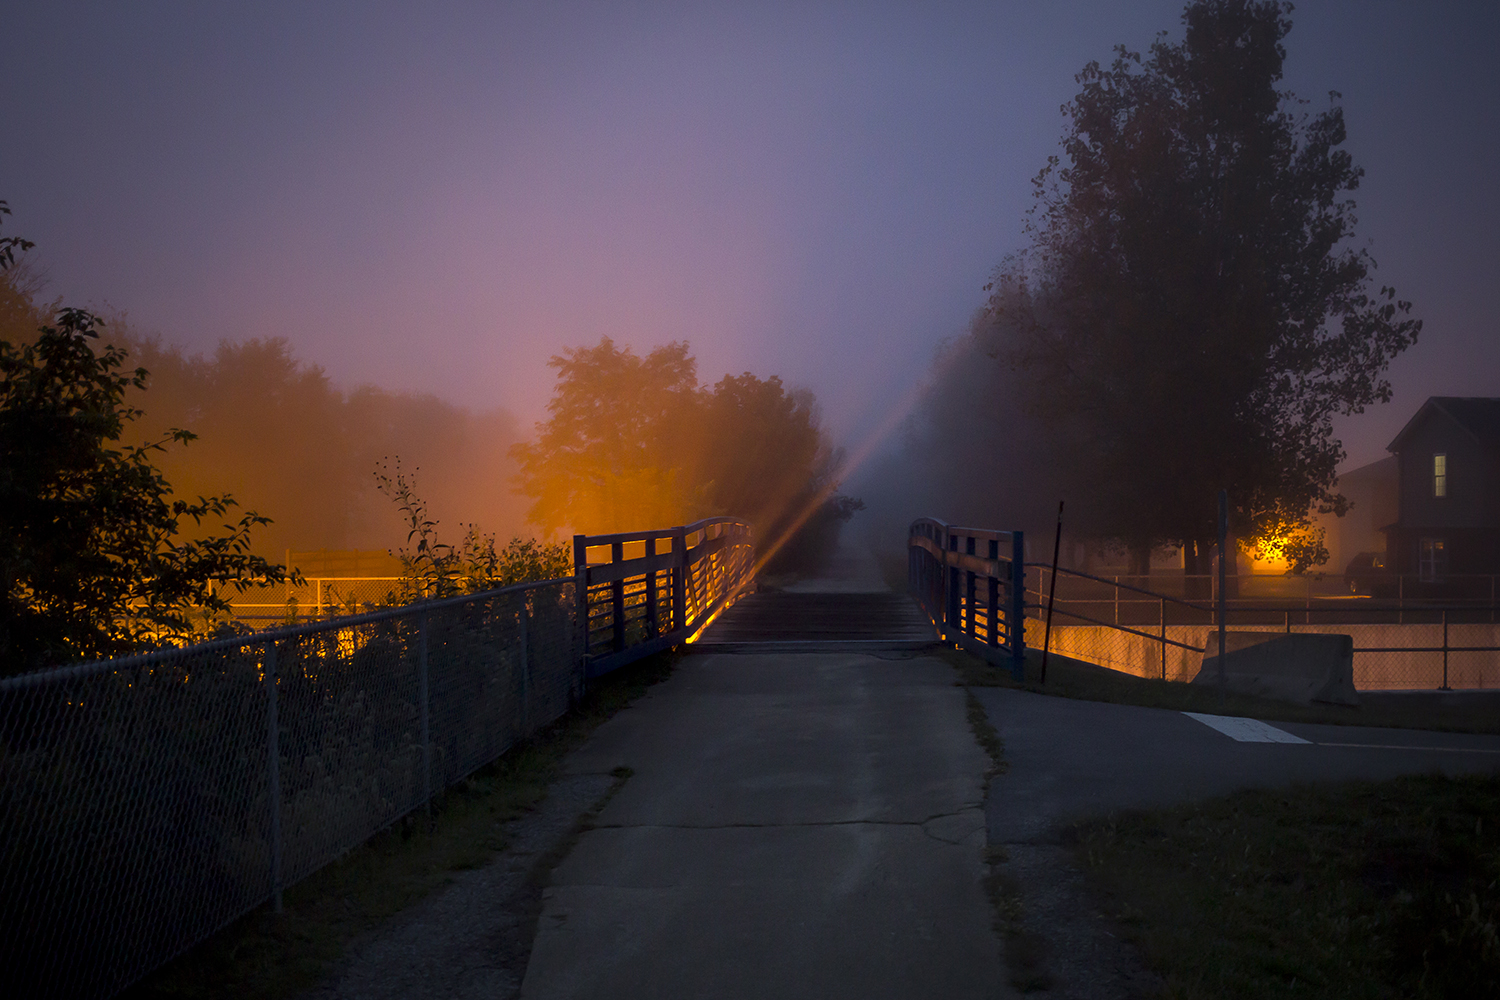 Lights from Plummer Boulevard in Chatham stream through the fog on the Interurban Bike Trail Oct. 9. Rich Saal/The State Journal-Register